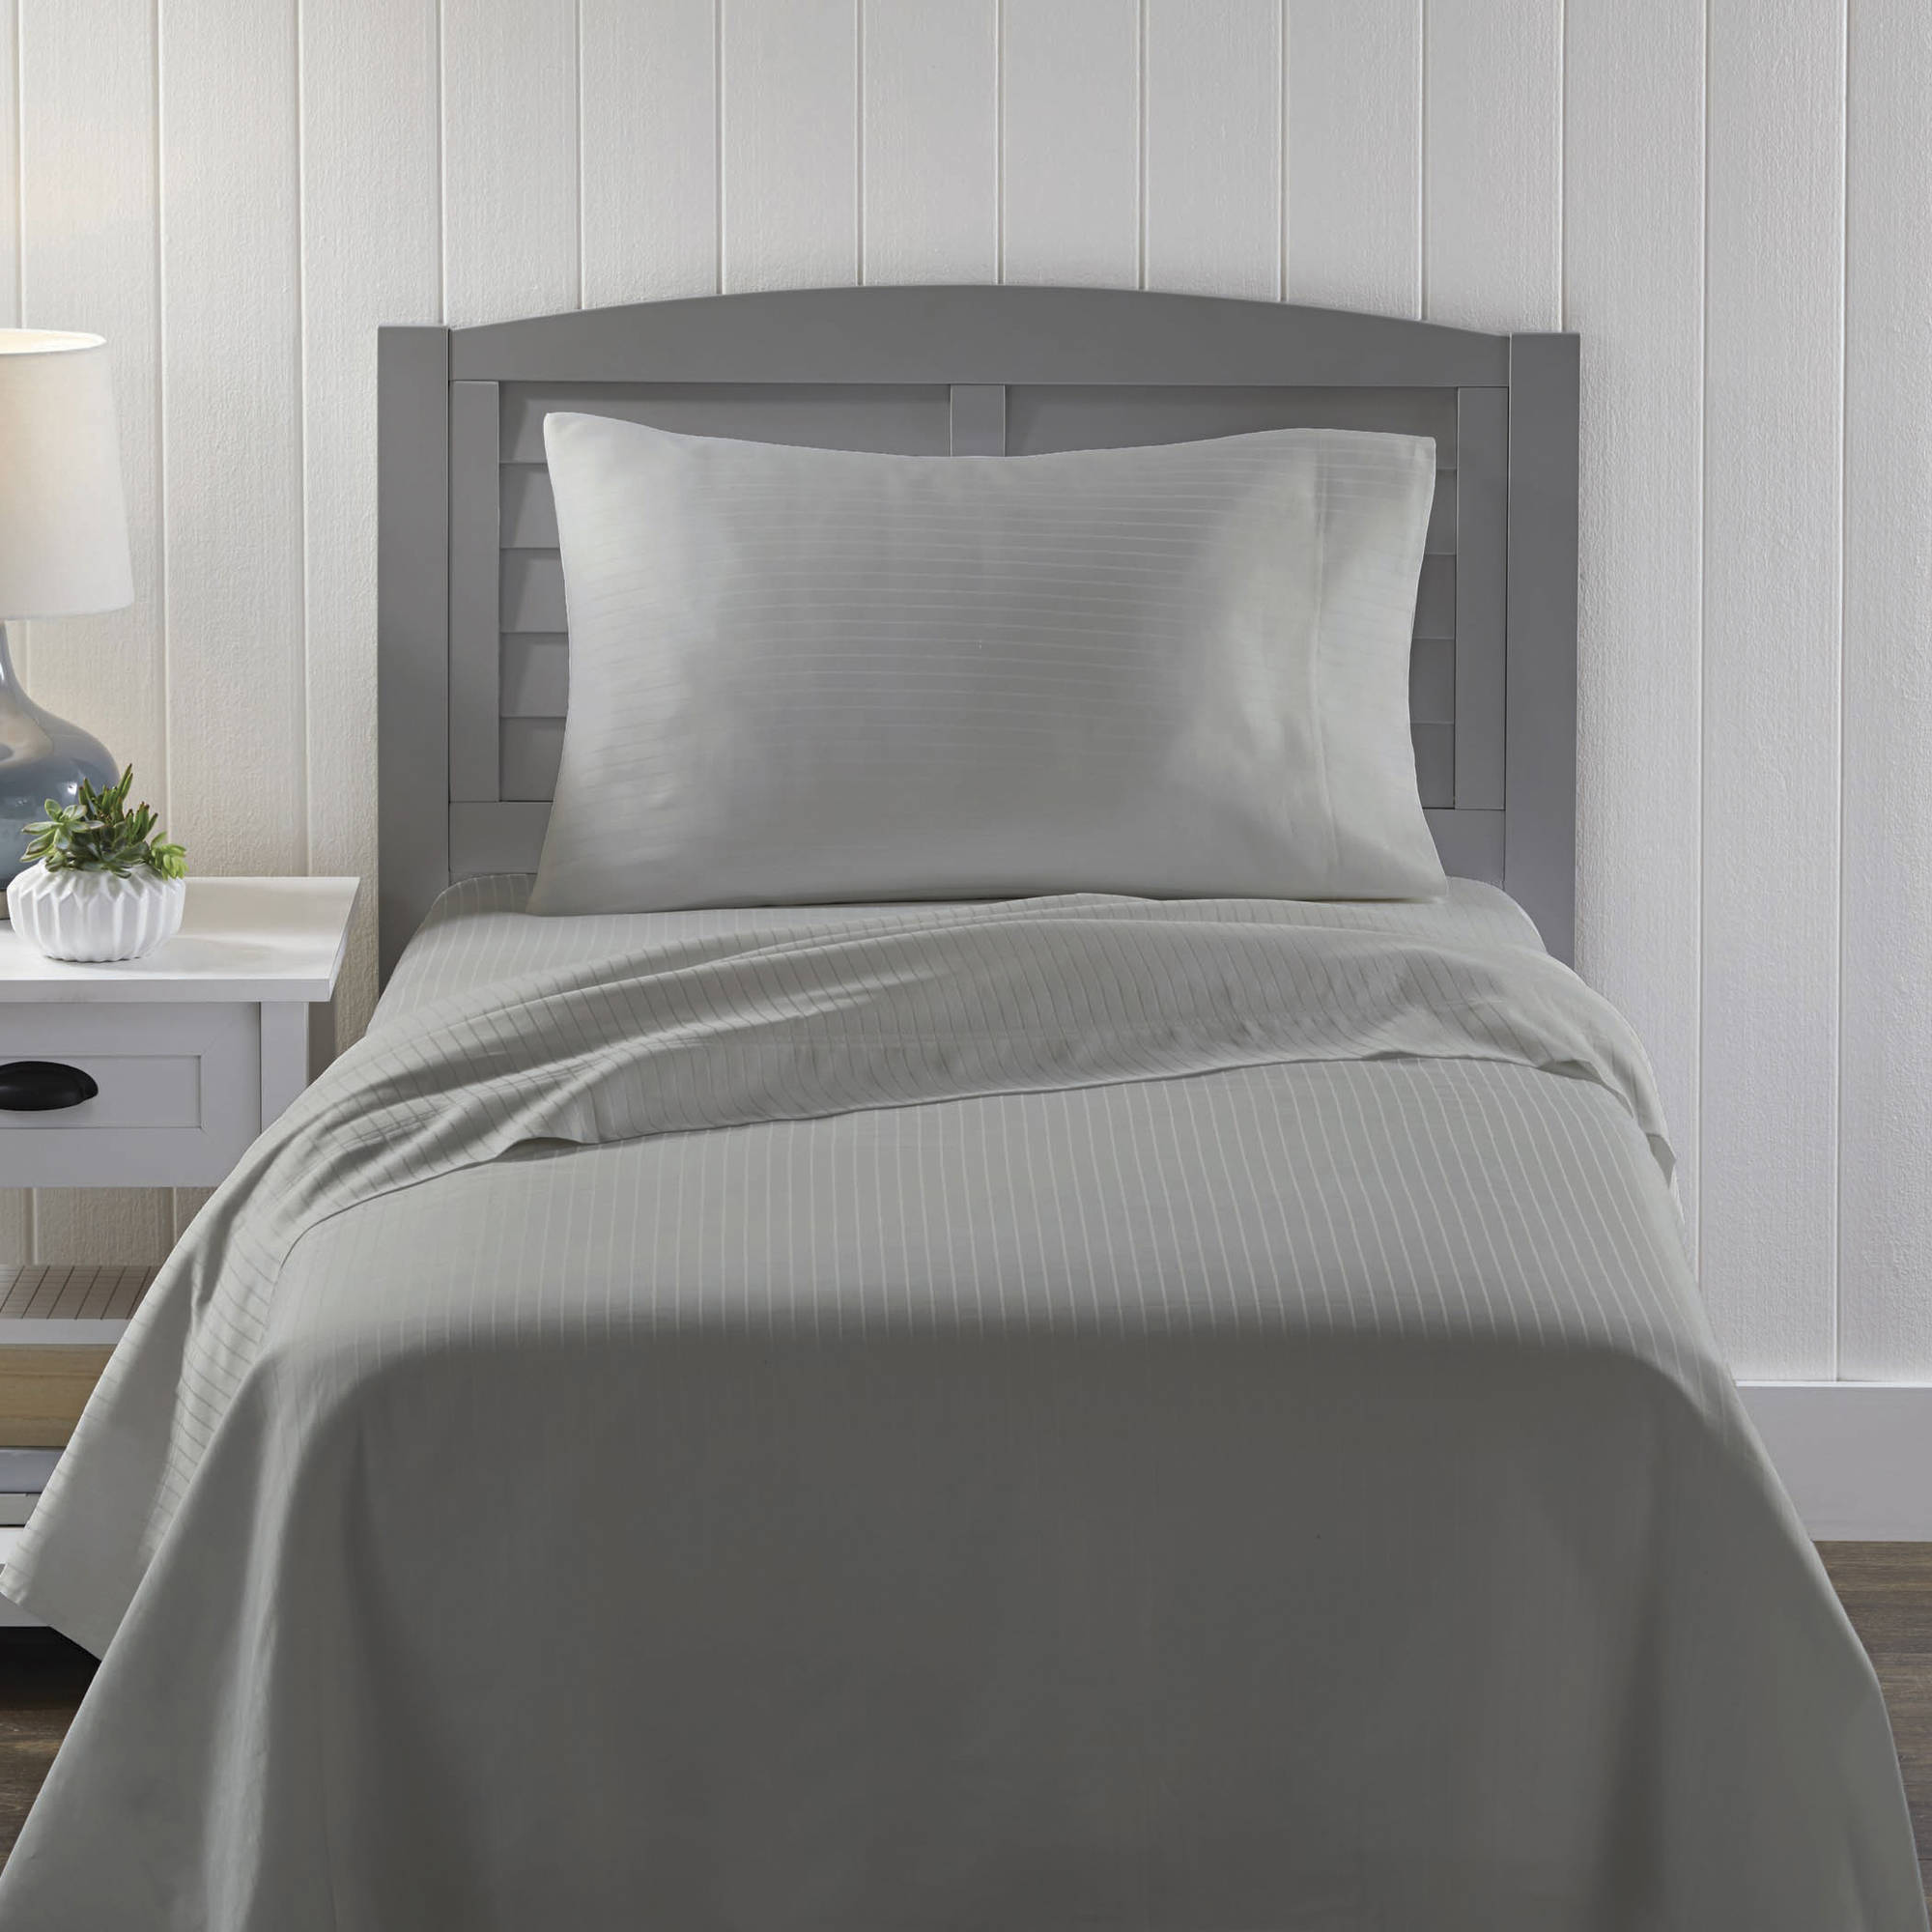 Better Homes Gardens Twin 300 Thread Count Damask Stripe Gray Bed Sheet Set 1